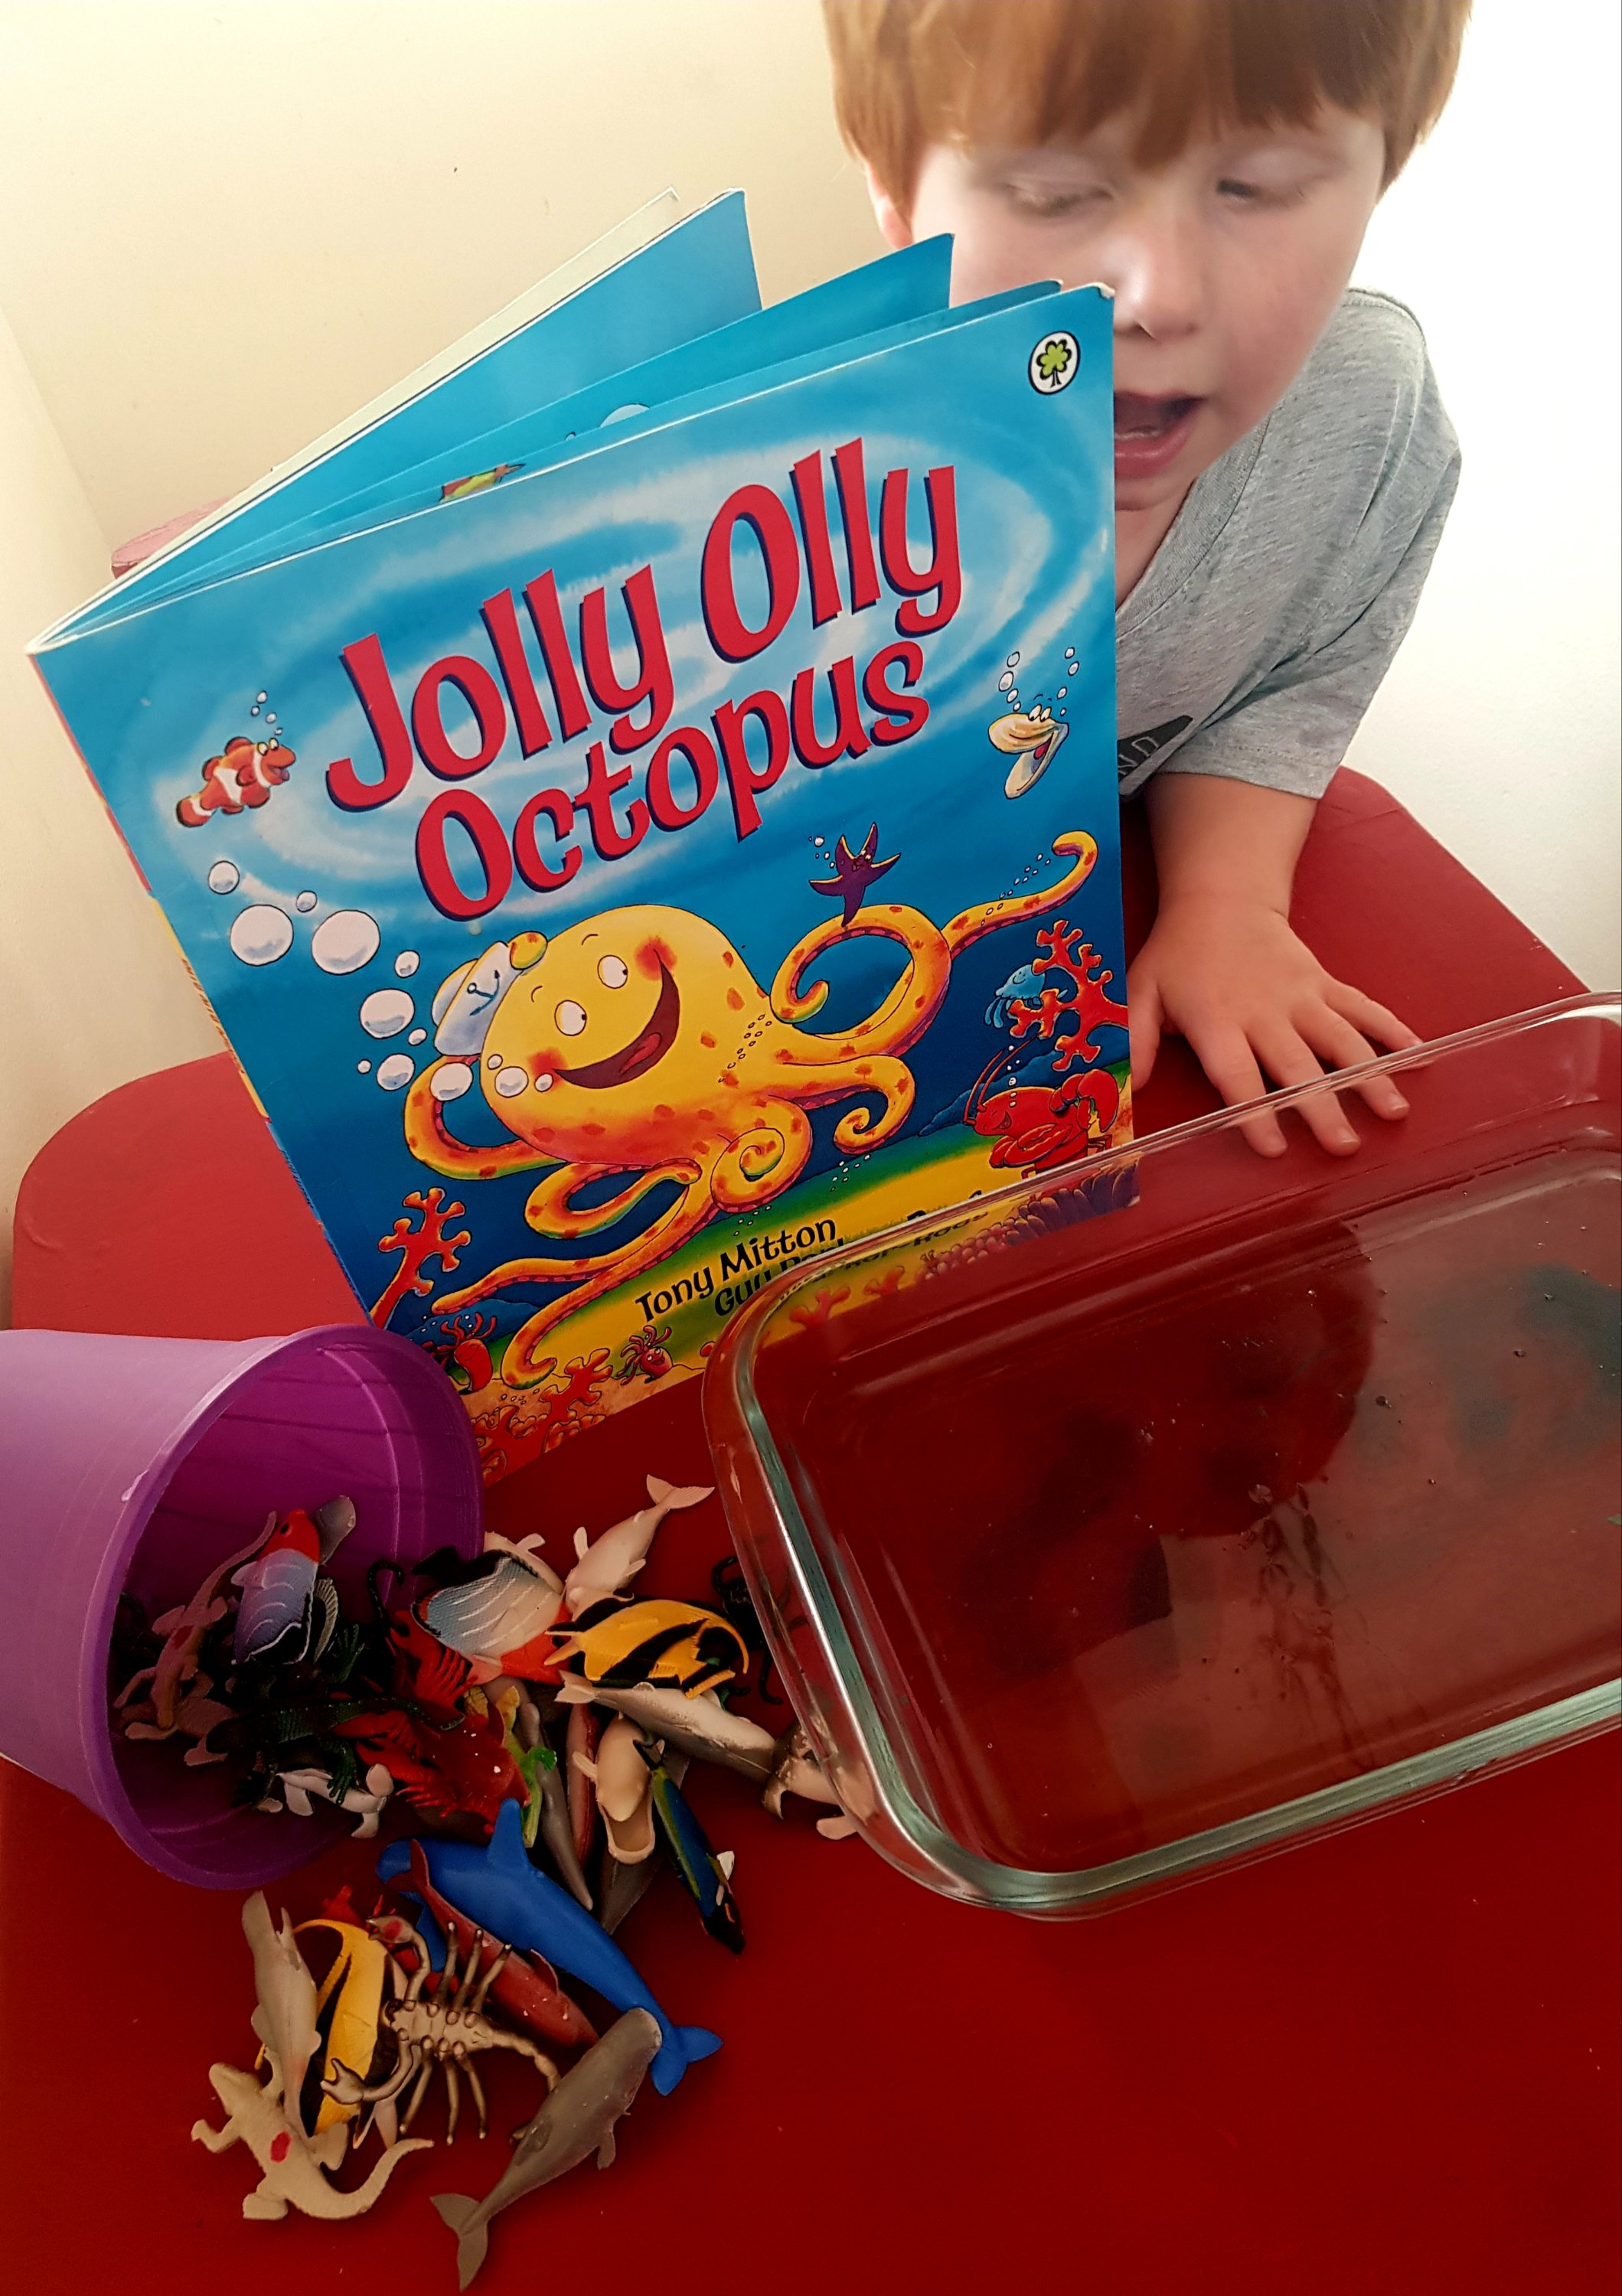 Bookish play with Jolly olly octopus